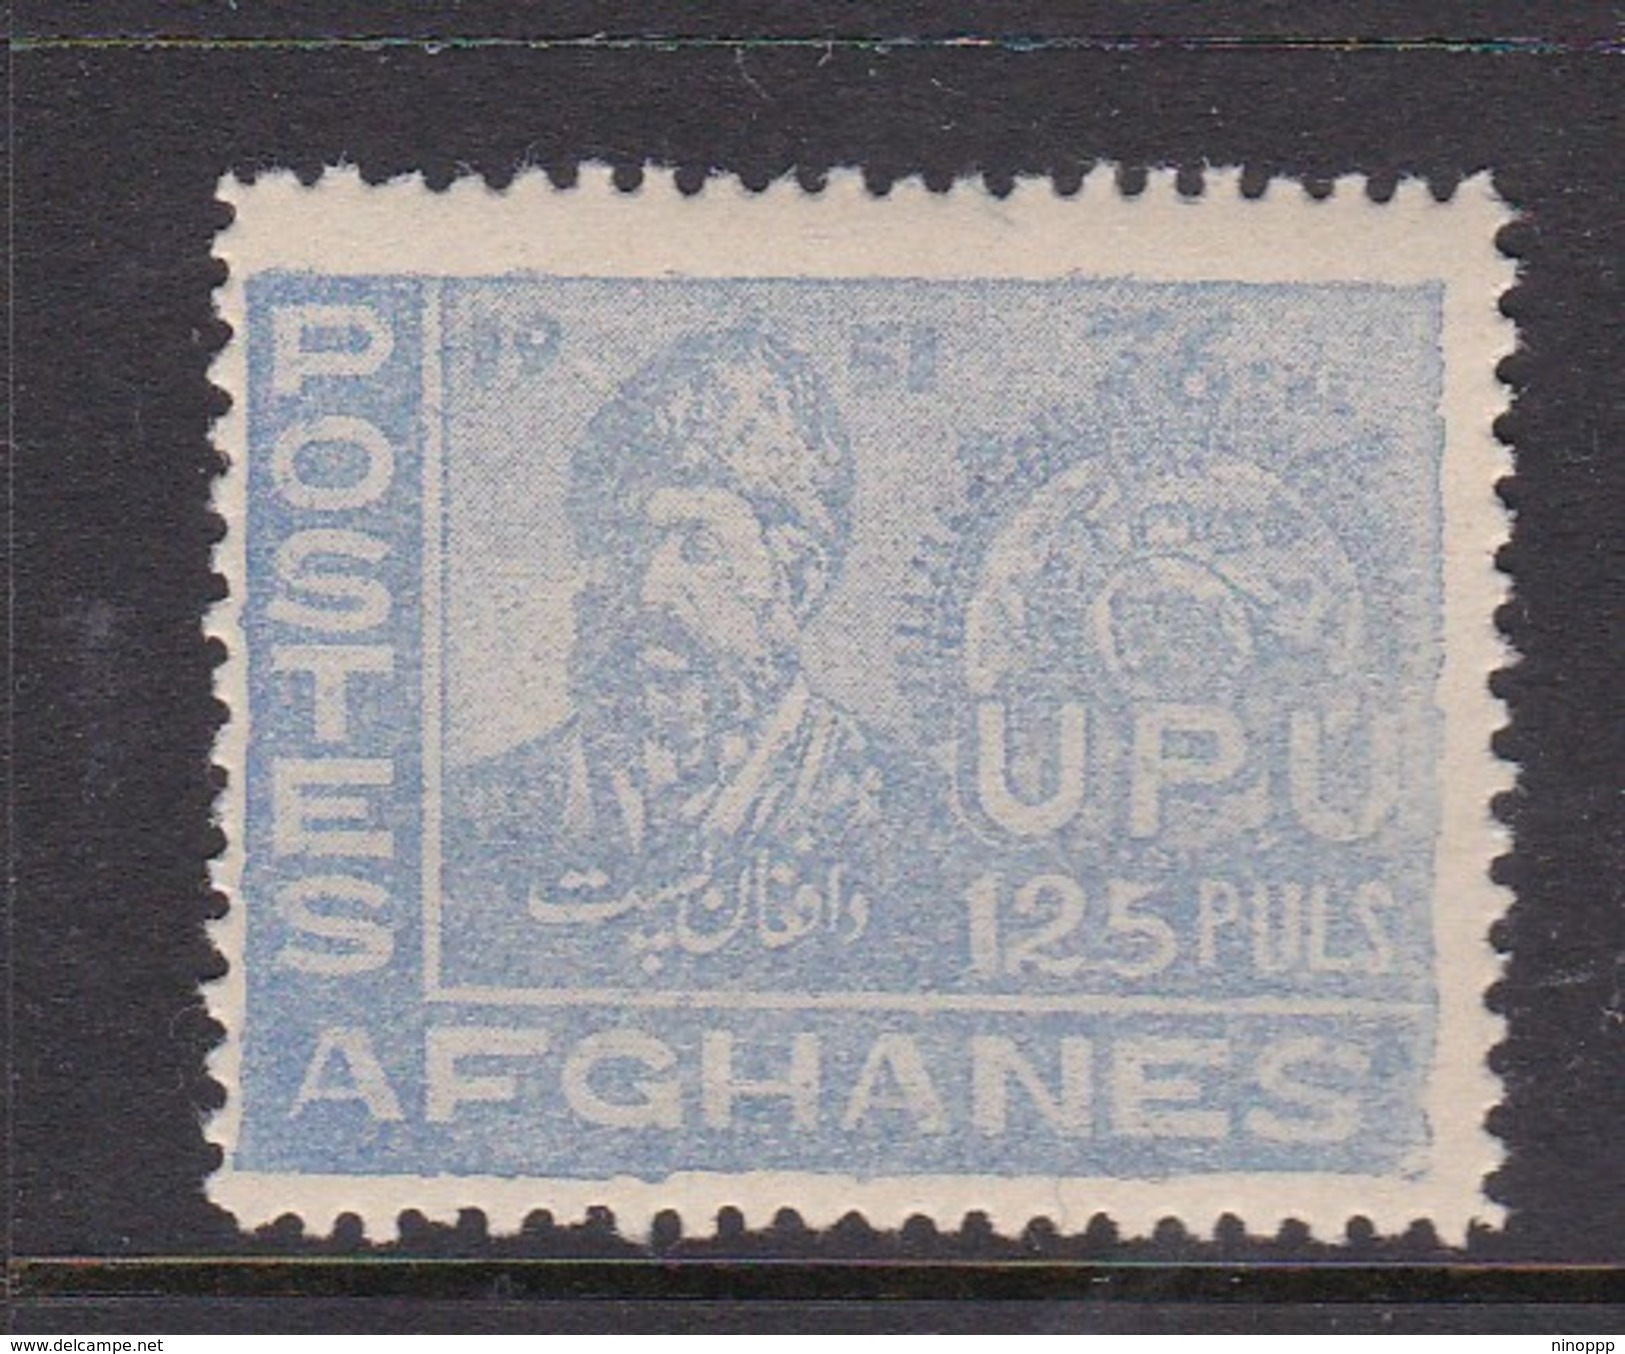 Afghanistan SG 354 1951 76th Anniversary Of UPU 125p Blue MNH - Afghanistan